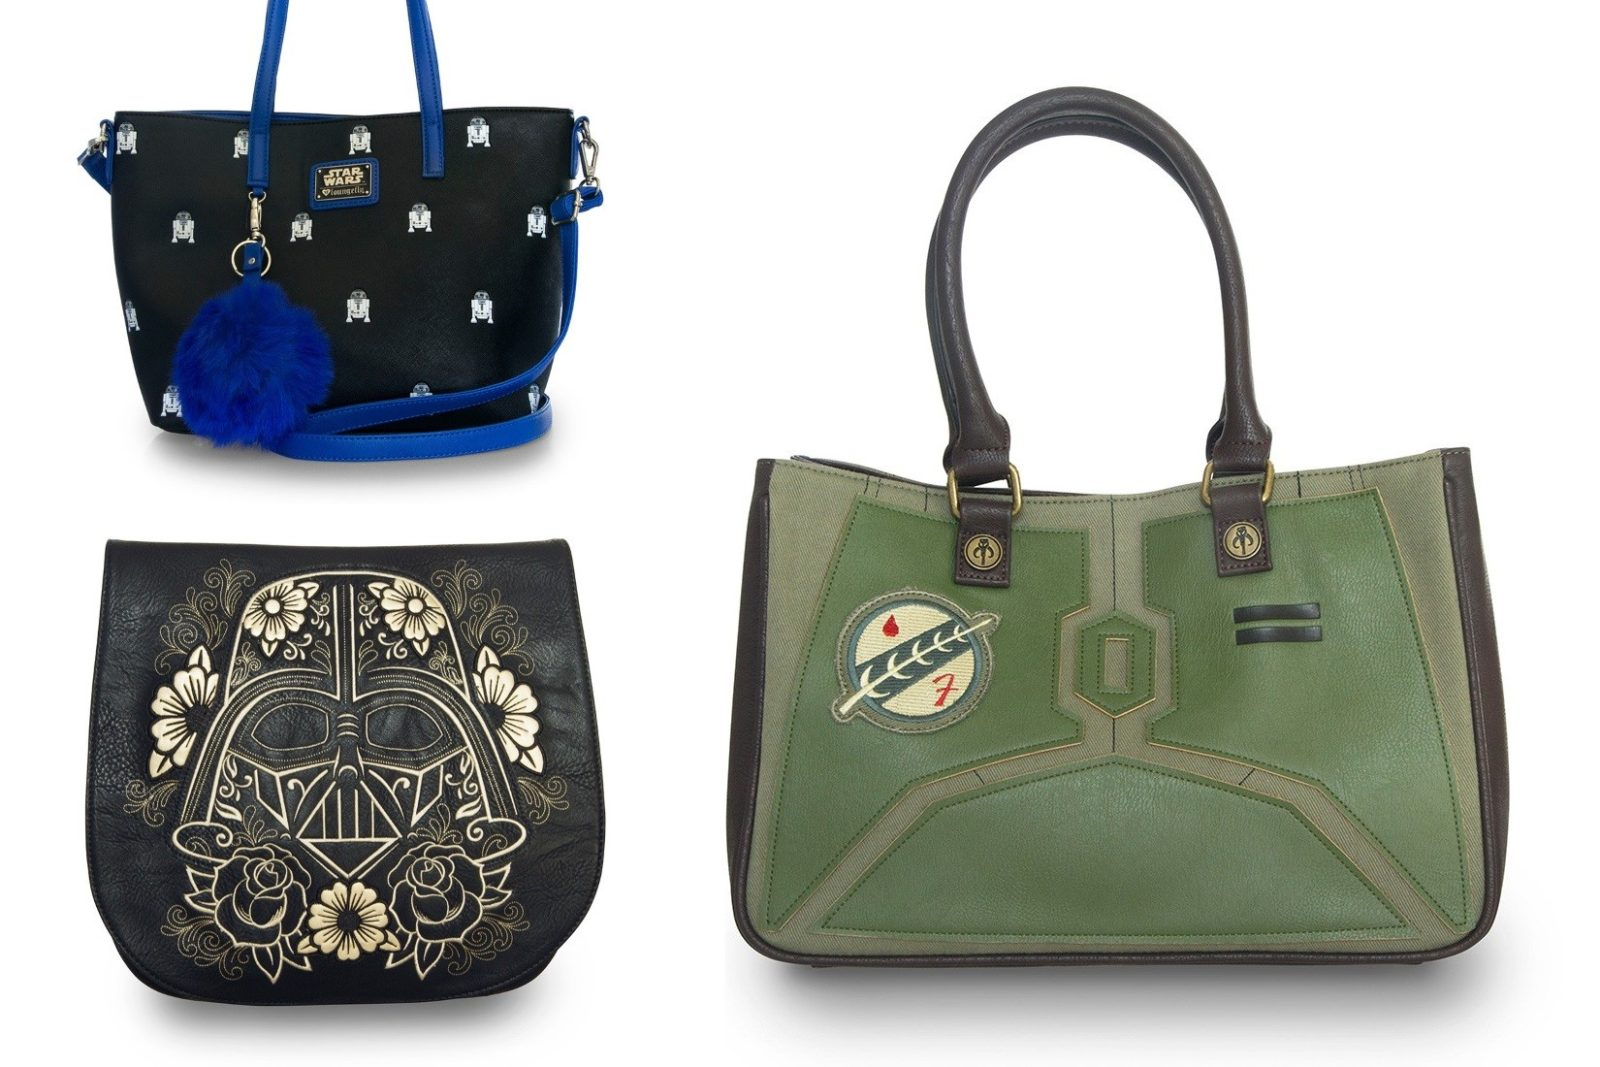 New Loungefly x Star Wars range of handbags and wallets